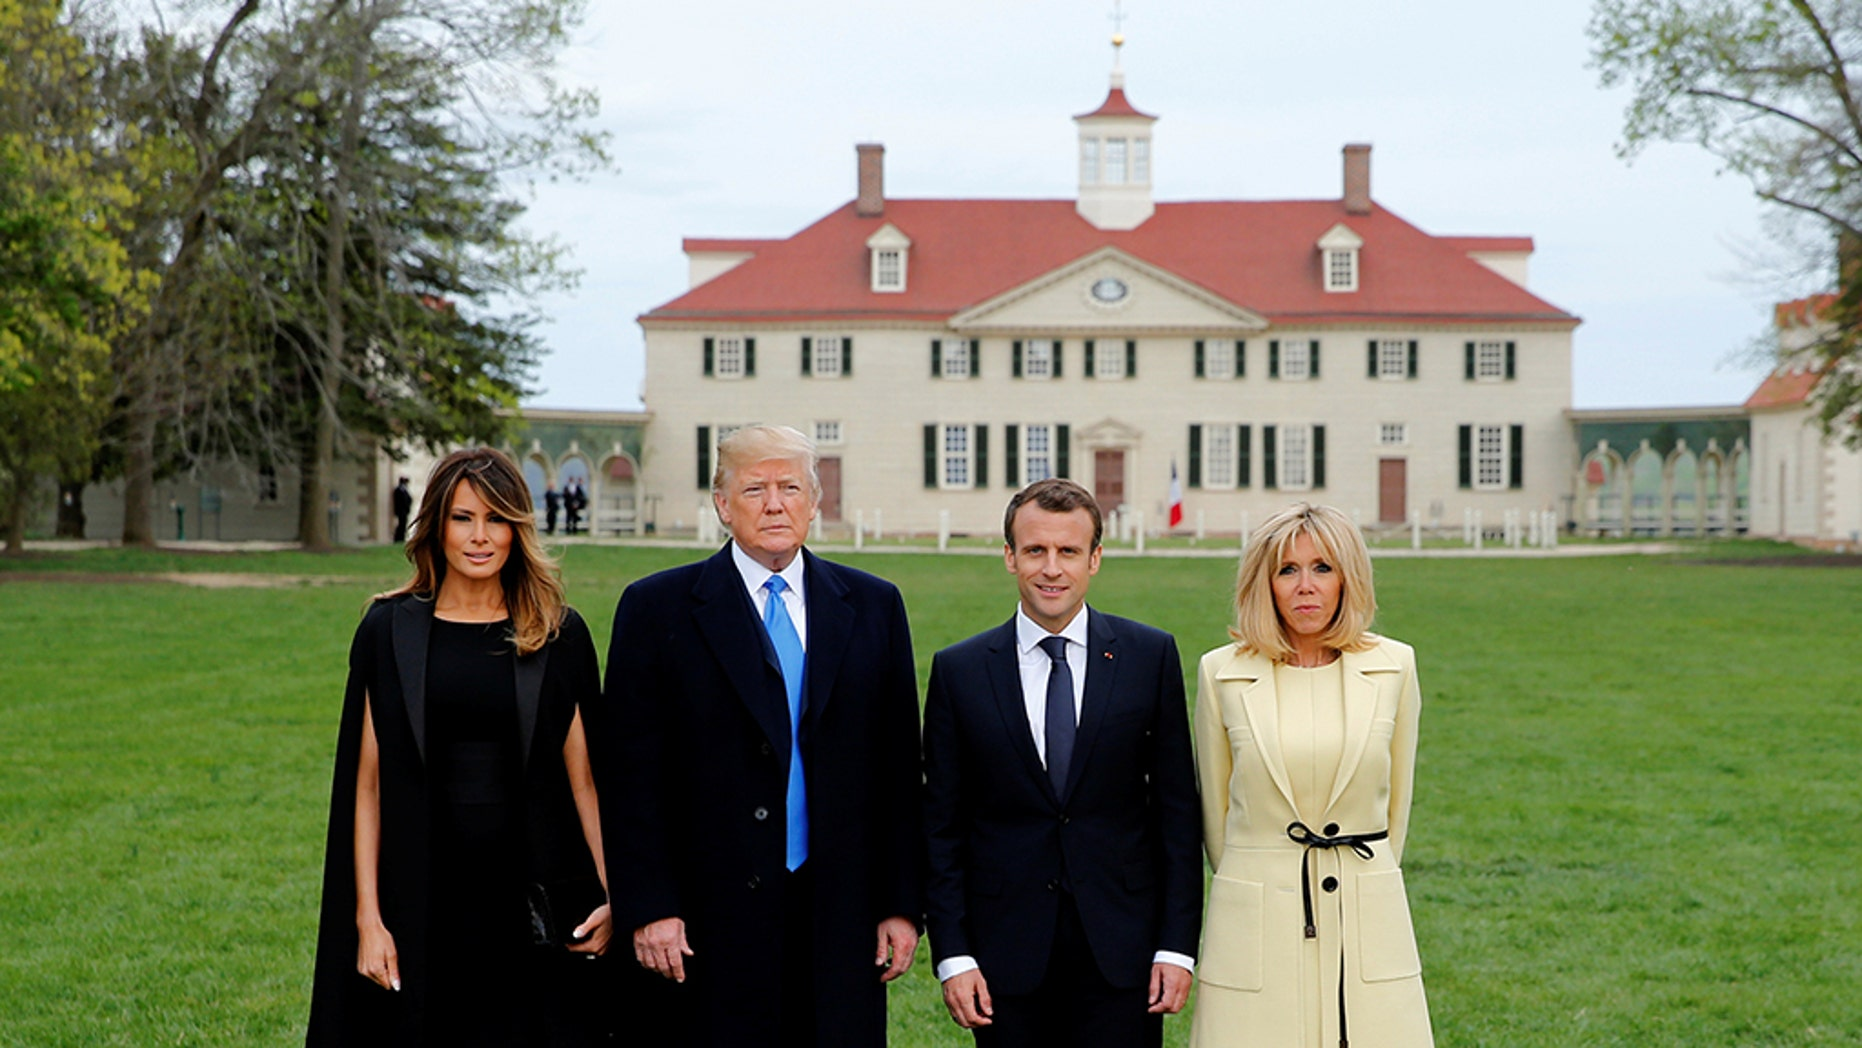 President Donald Trump and first lady Melania Trump and French President Emmanuel Macron and Brigitte Macron pose in front of Mount Vernon, on April 23, 2018.